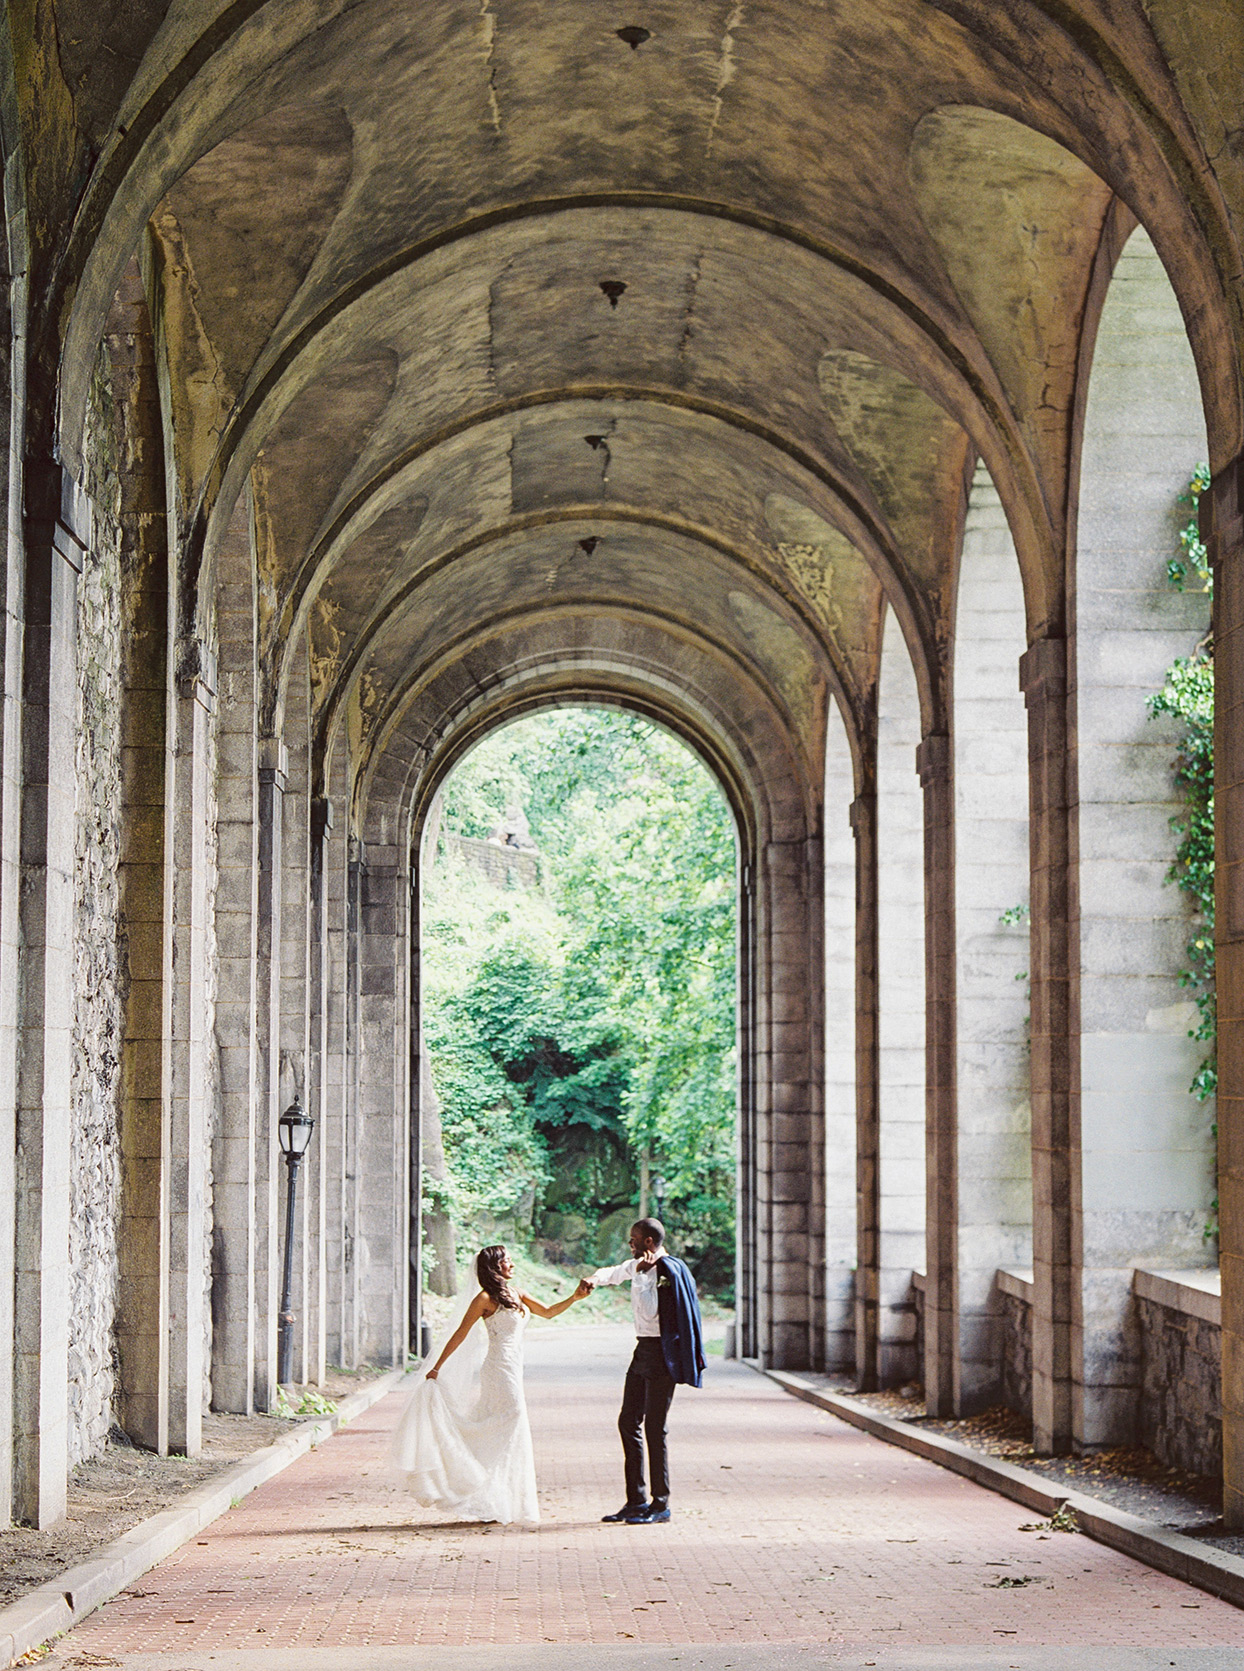 wedding couple dancing under stone arching columns at park